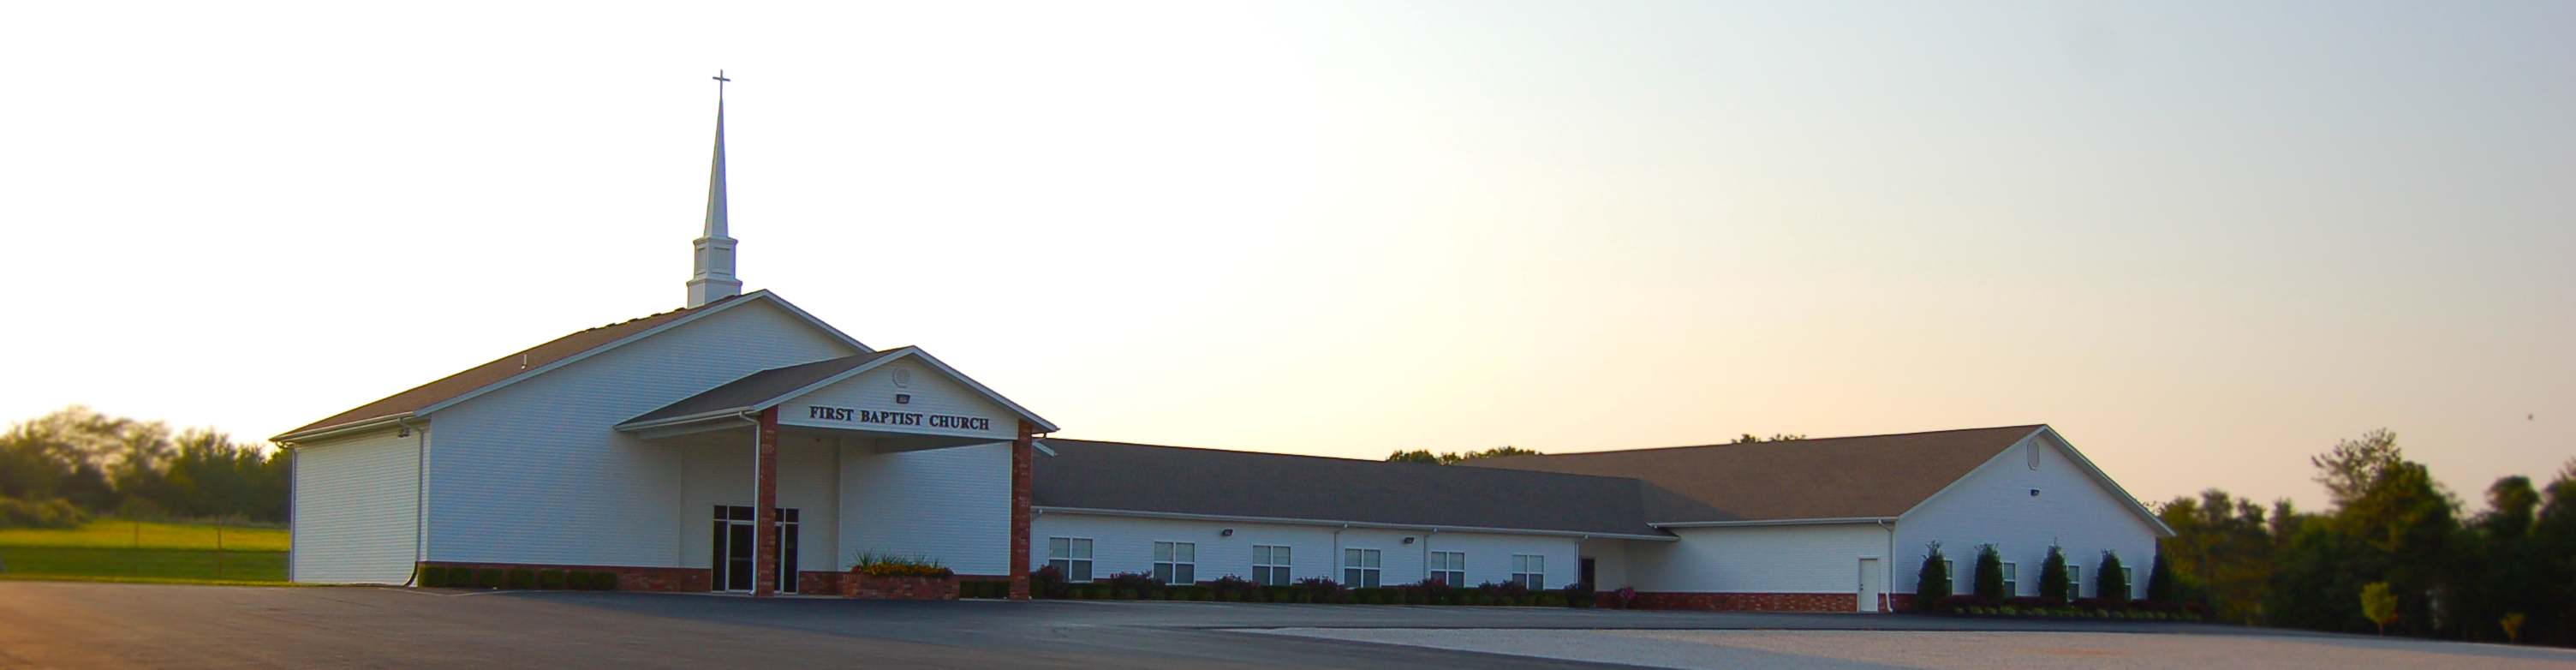 Walnut Grove First Baptist Church